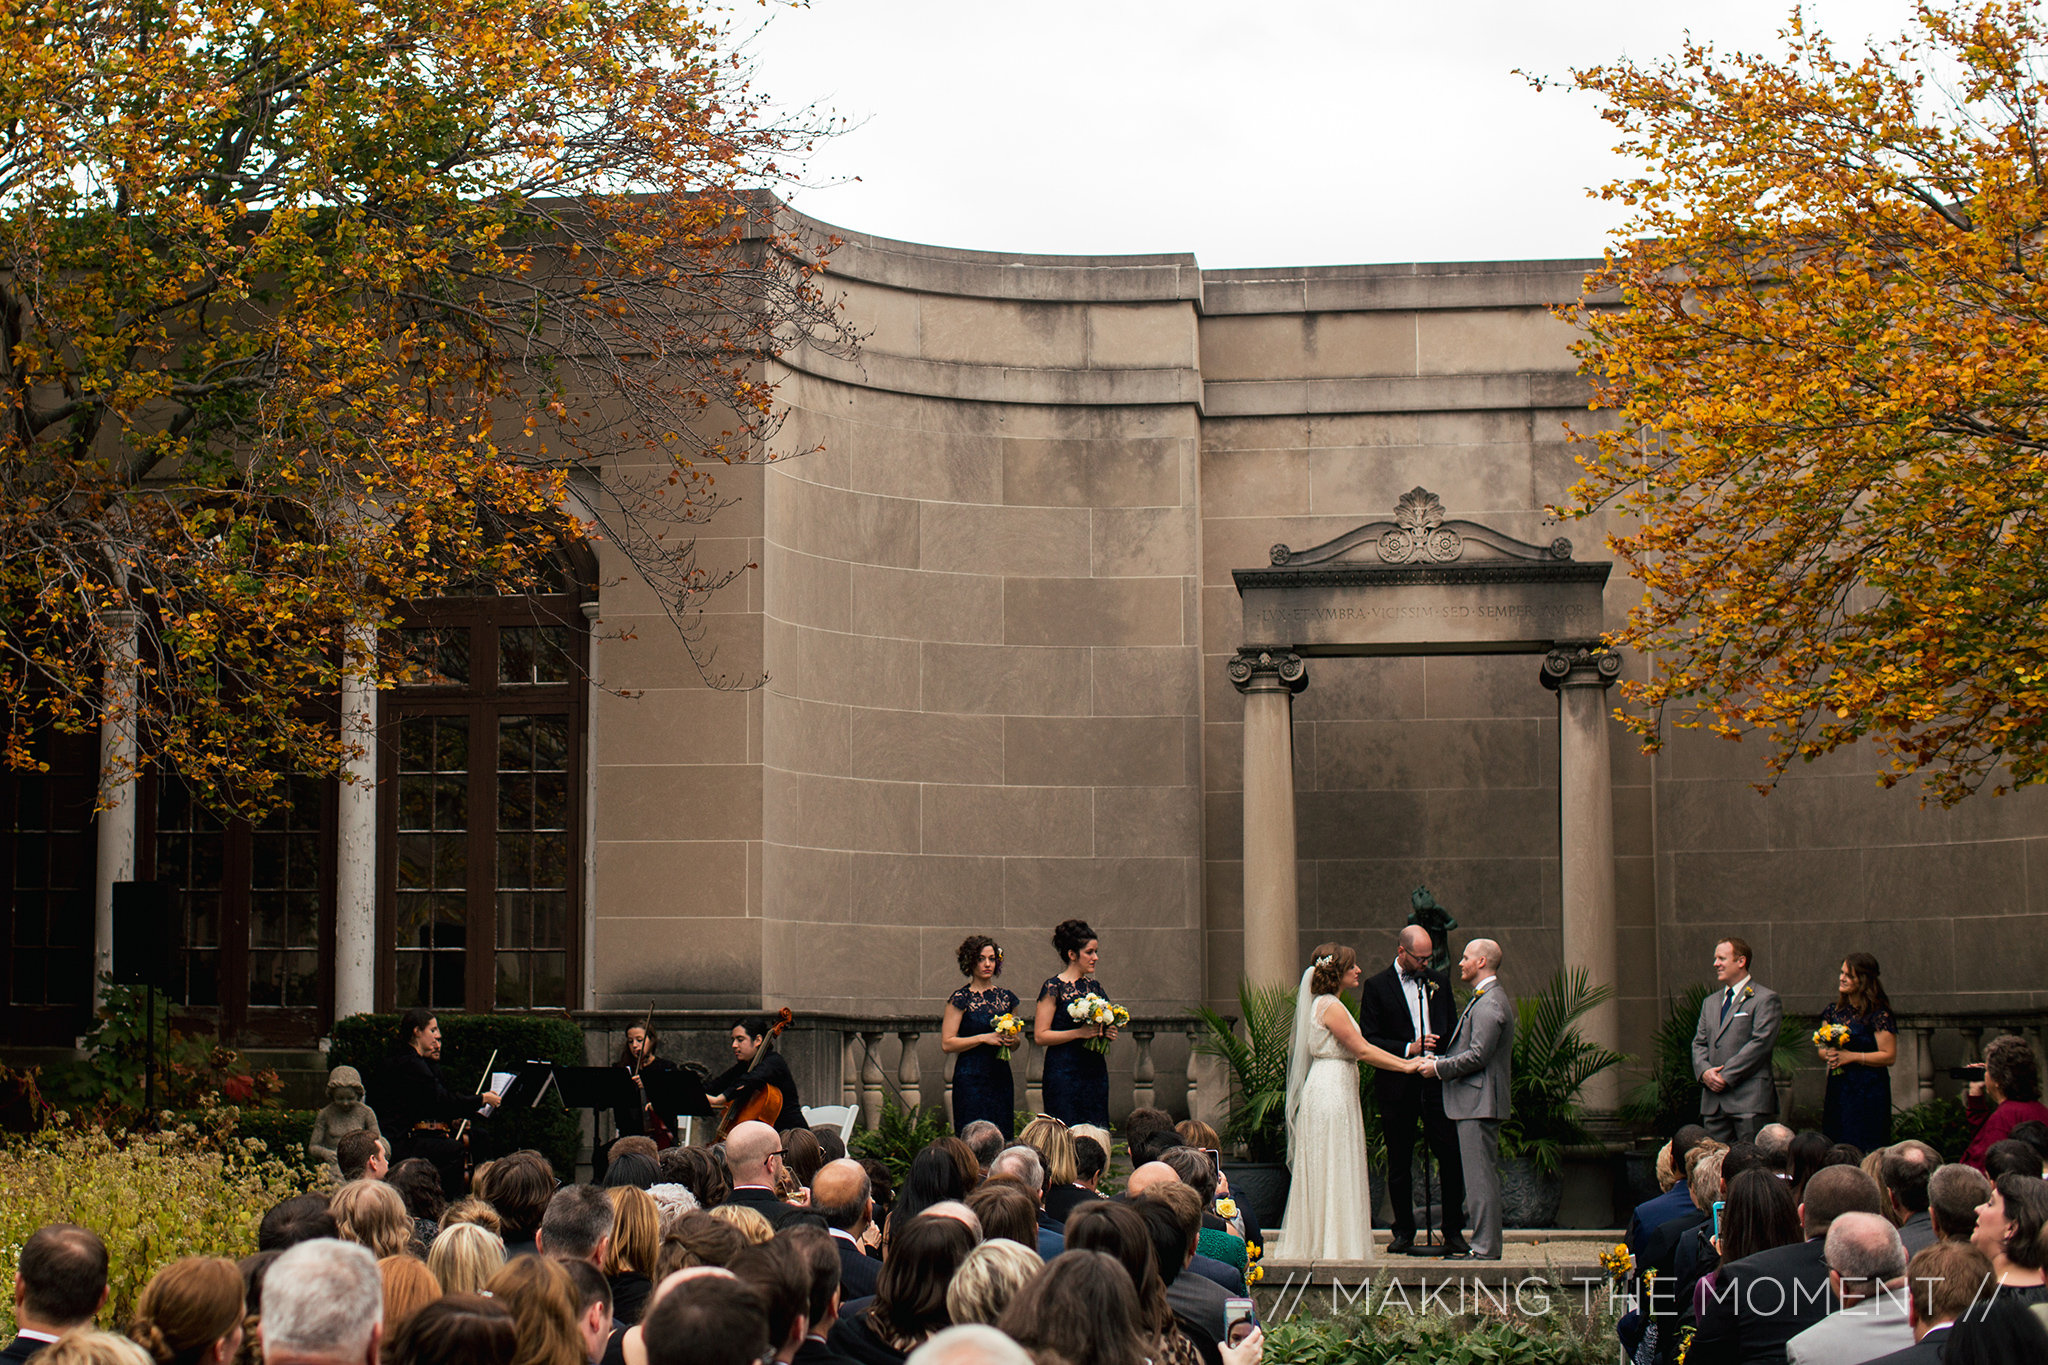 The Western Reserve Historical Society wedding ceremony in the Hanna Courtyard Garden